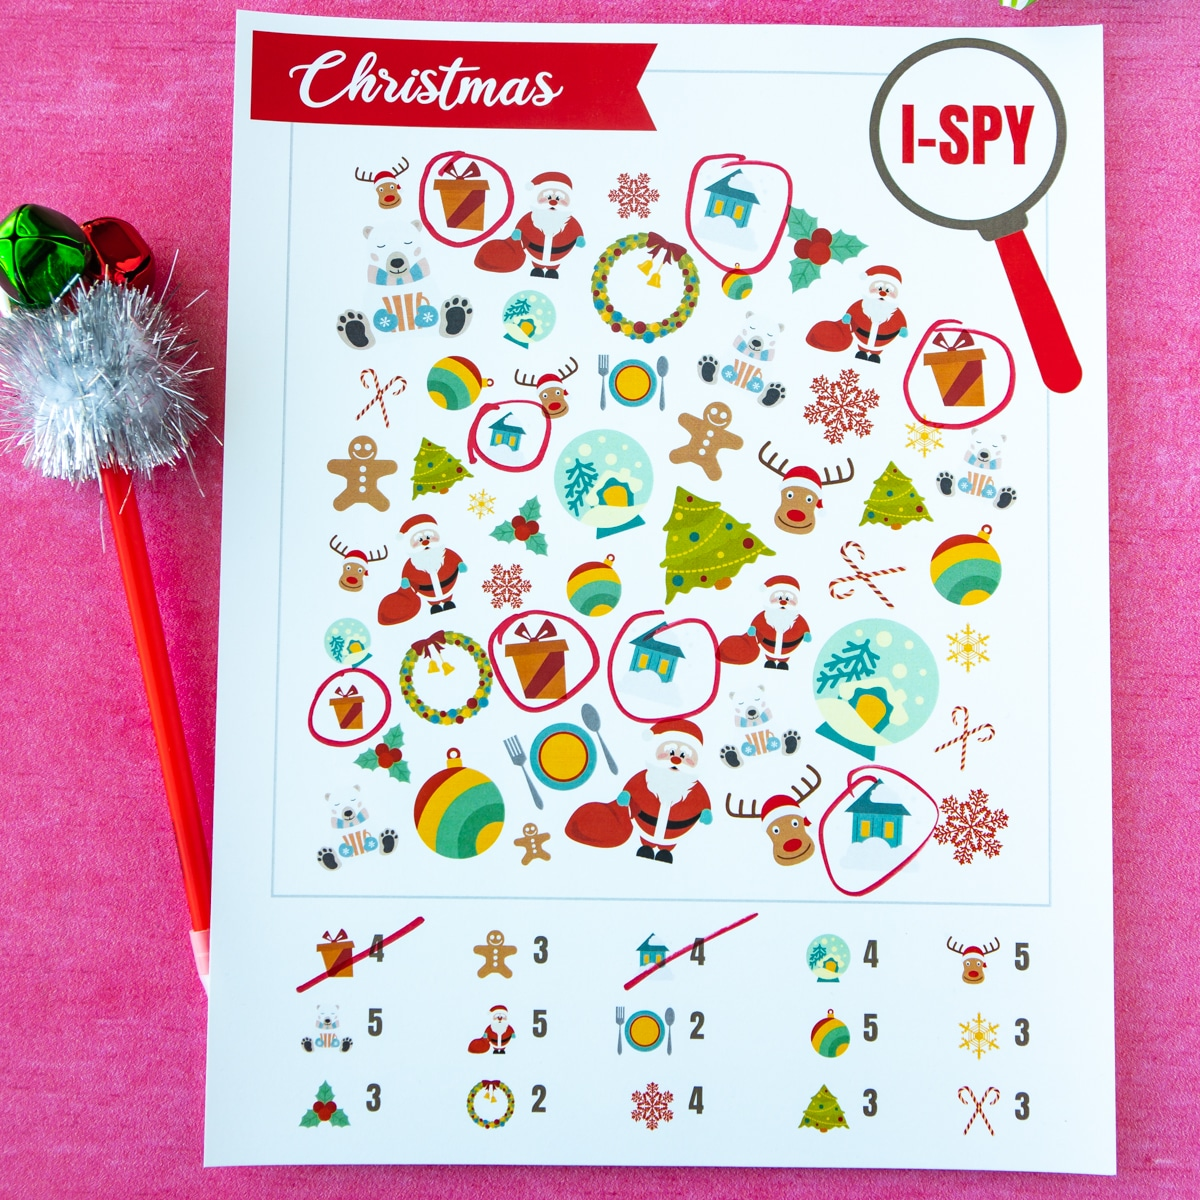 Christmas i-spy game with a pen with jingle bells